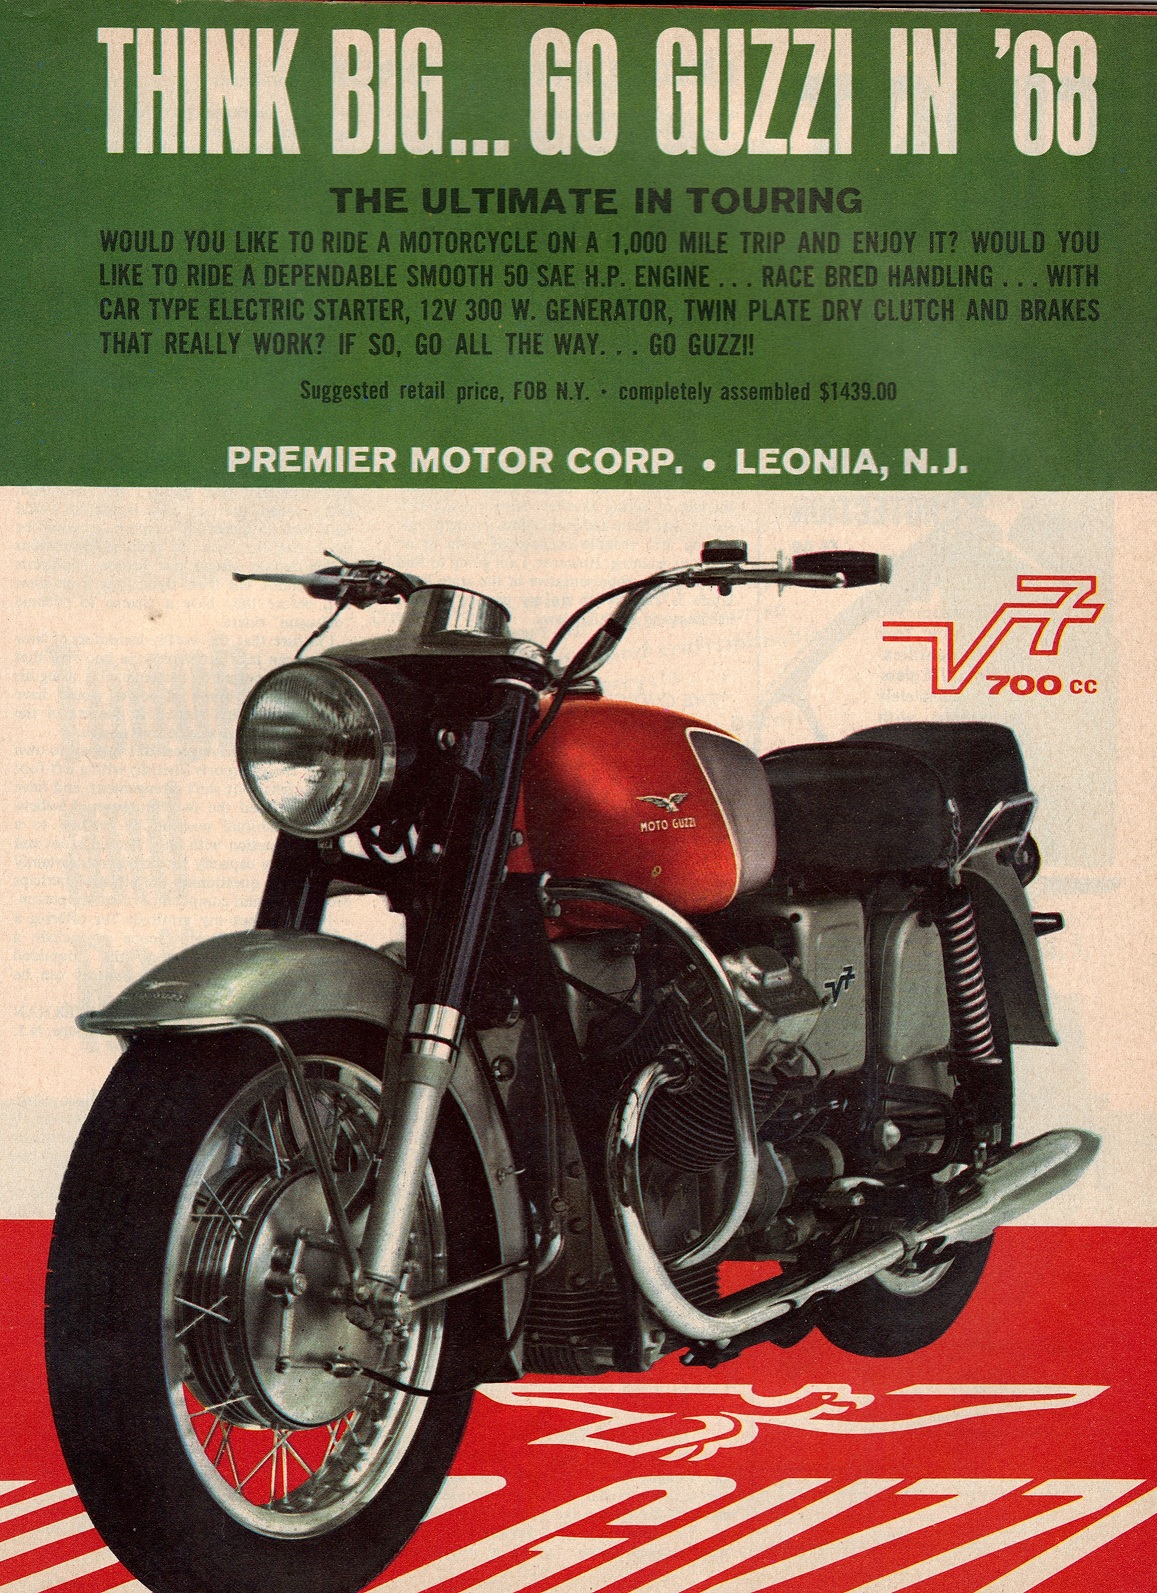 Moto Guzzi advertisement: Think Big...Go Guzzi in '68.